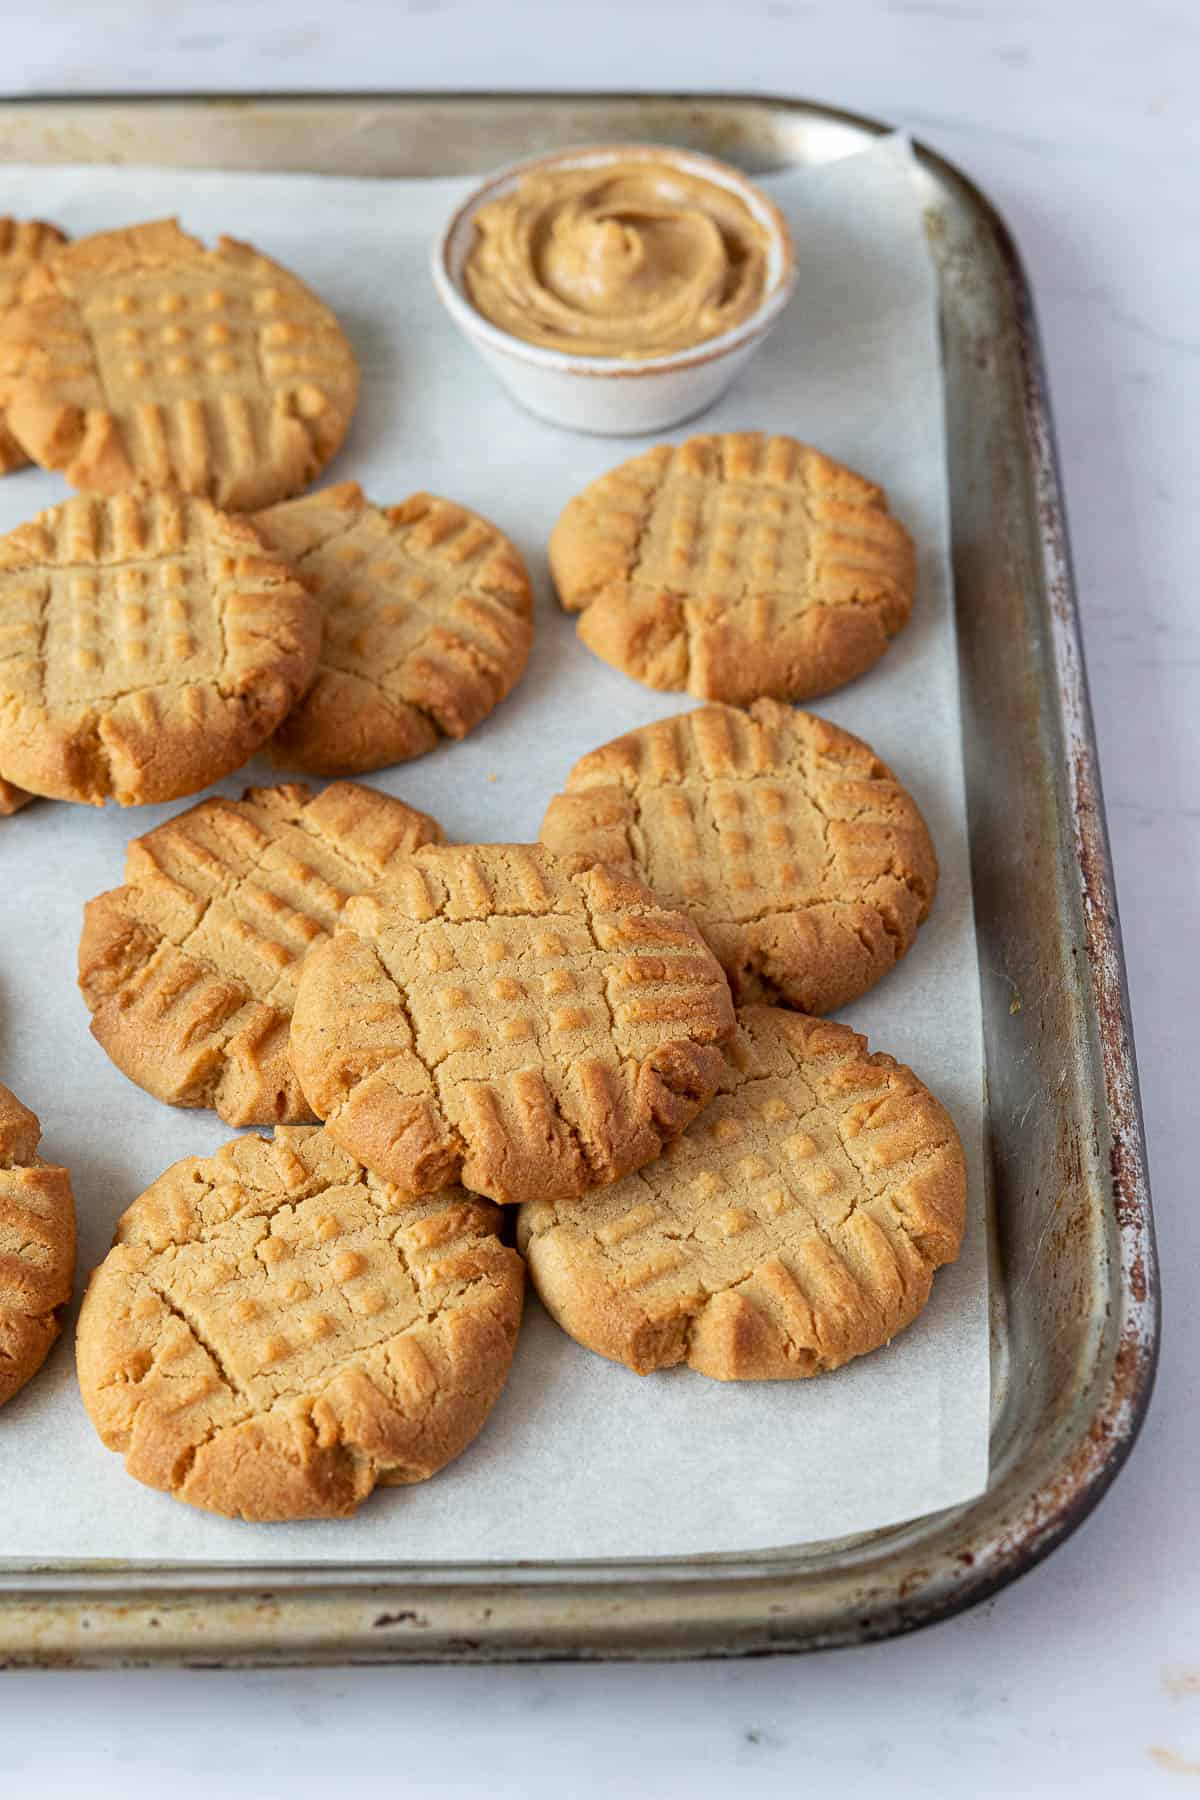 Peanut butter cookies on a metal baking tray.